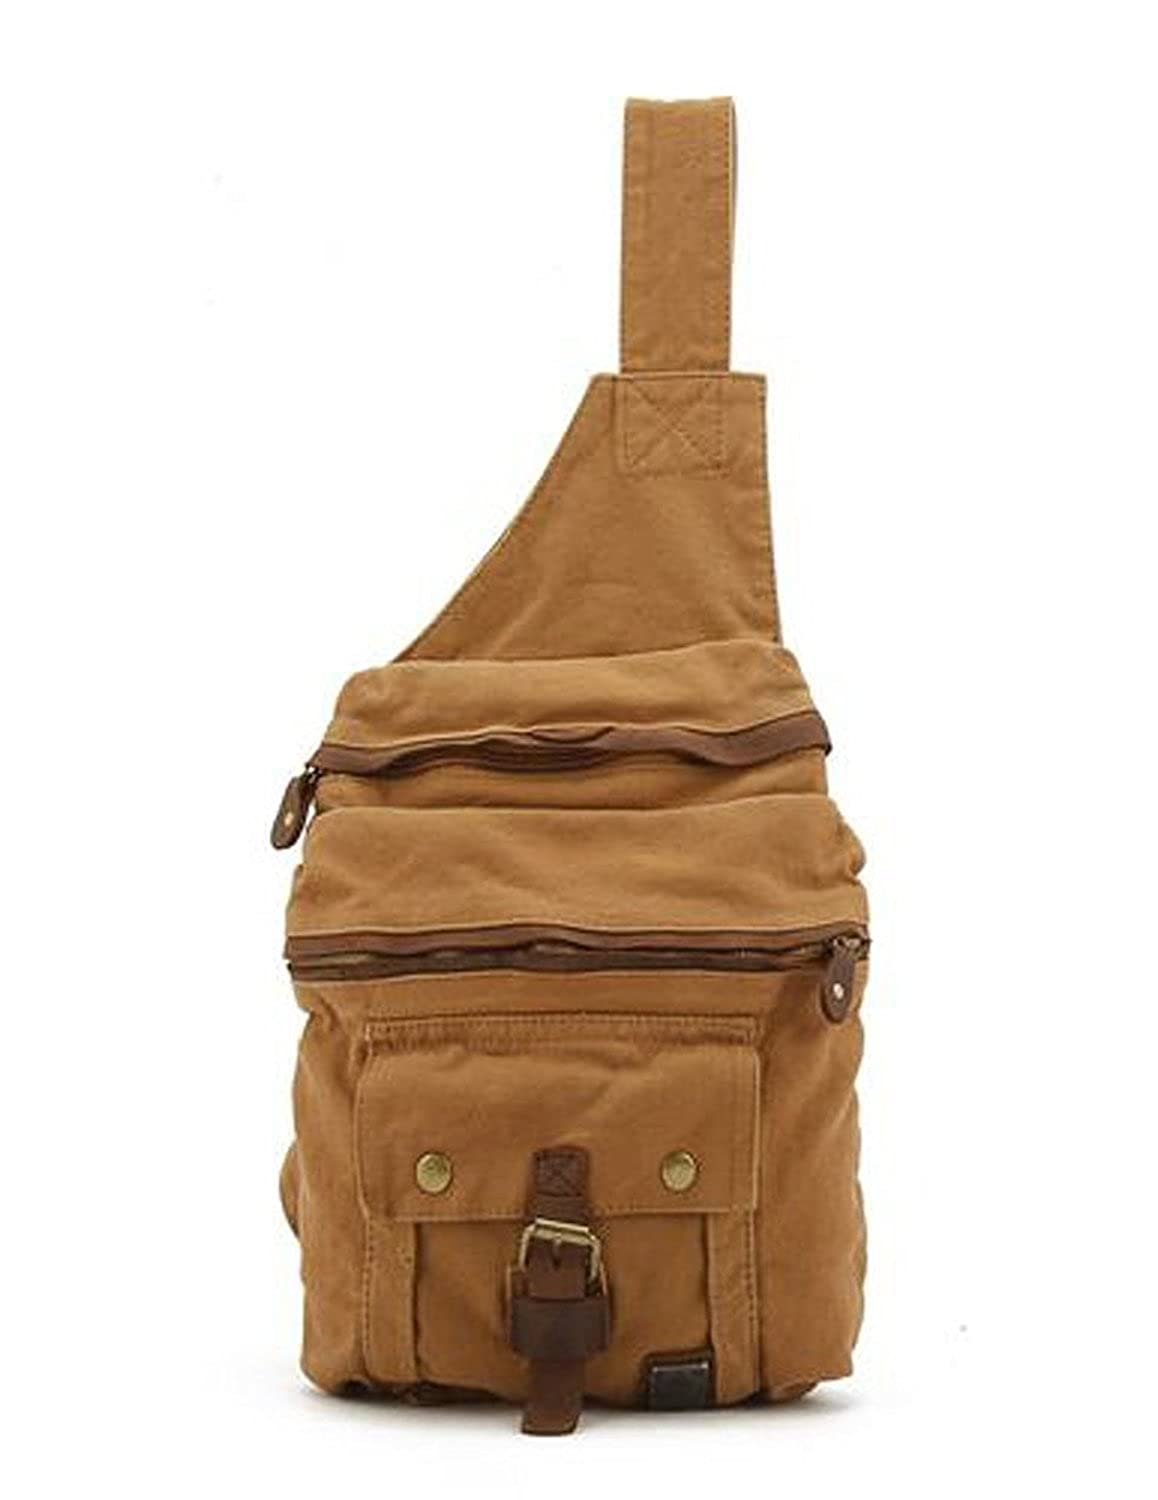 Whatland Leather Canvas Trim Casual Sling Backpack Cross Body Shoulder Bag